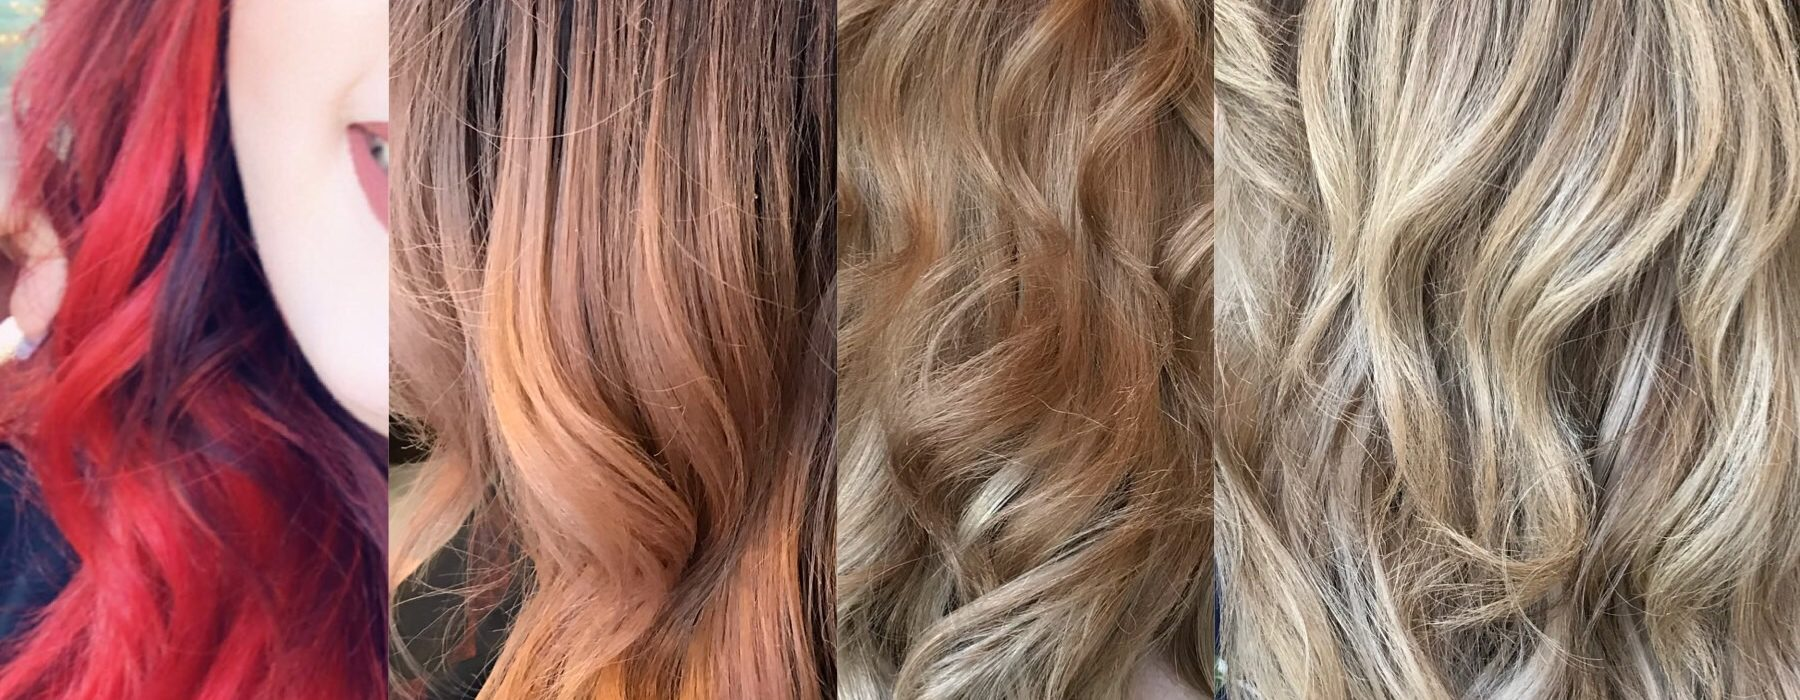 Tired of your color... We specialize in Color!